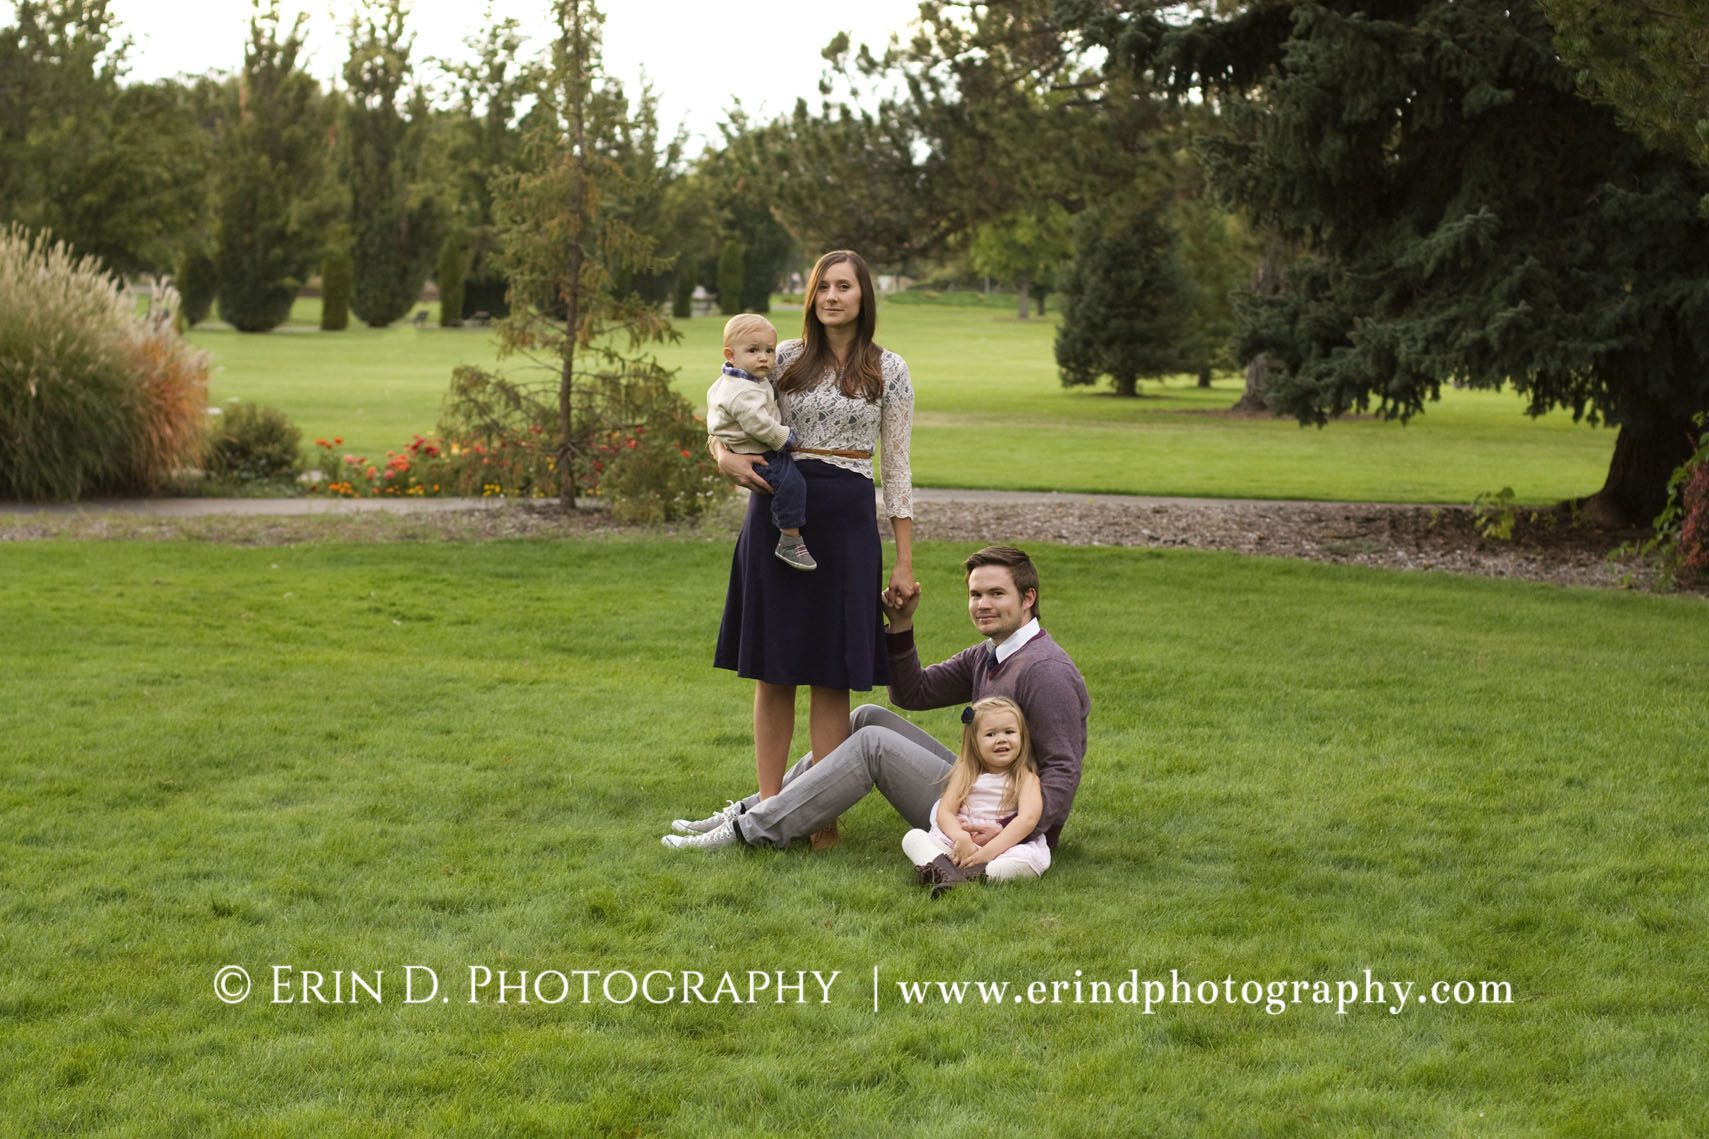 Boise Family Portraits | © Erin D. Photography